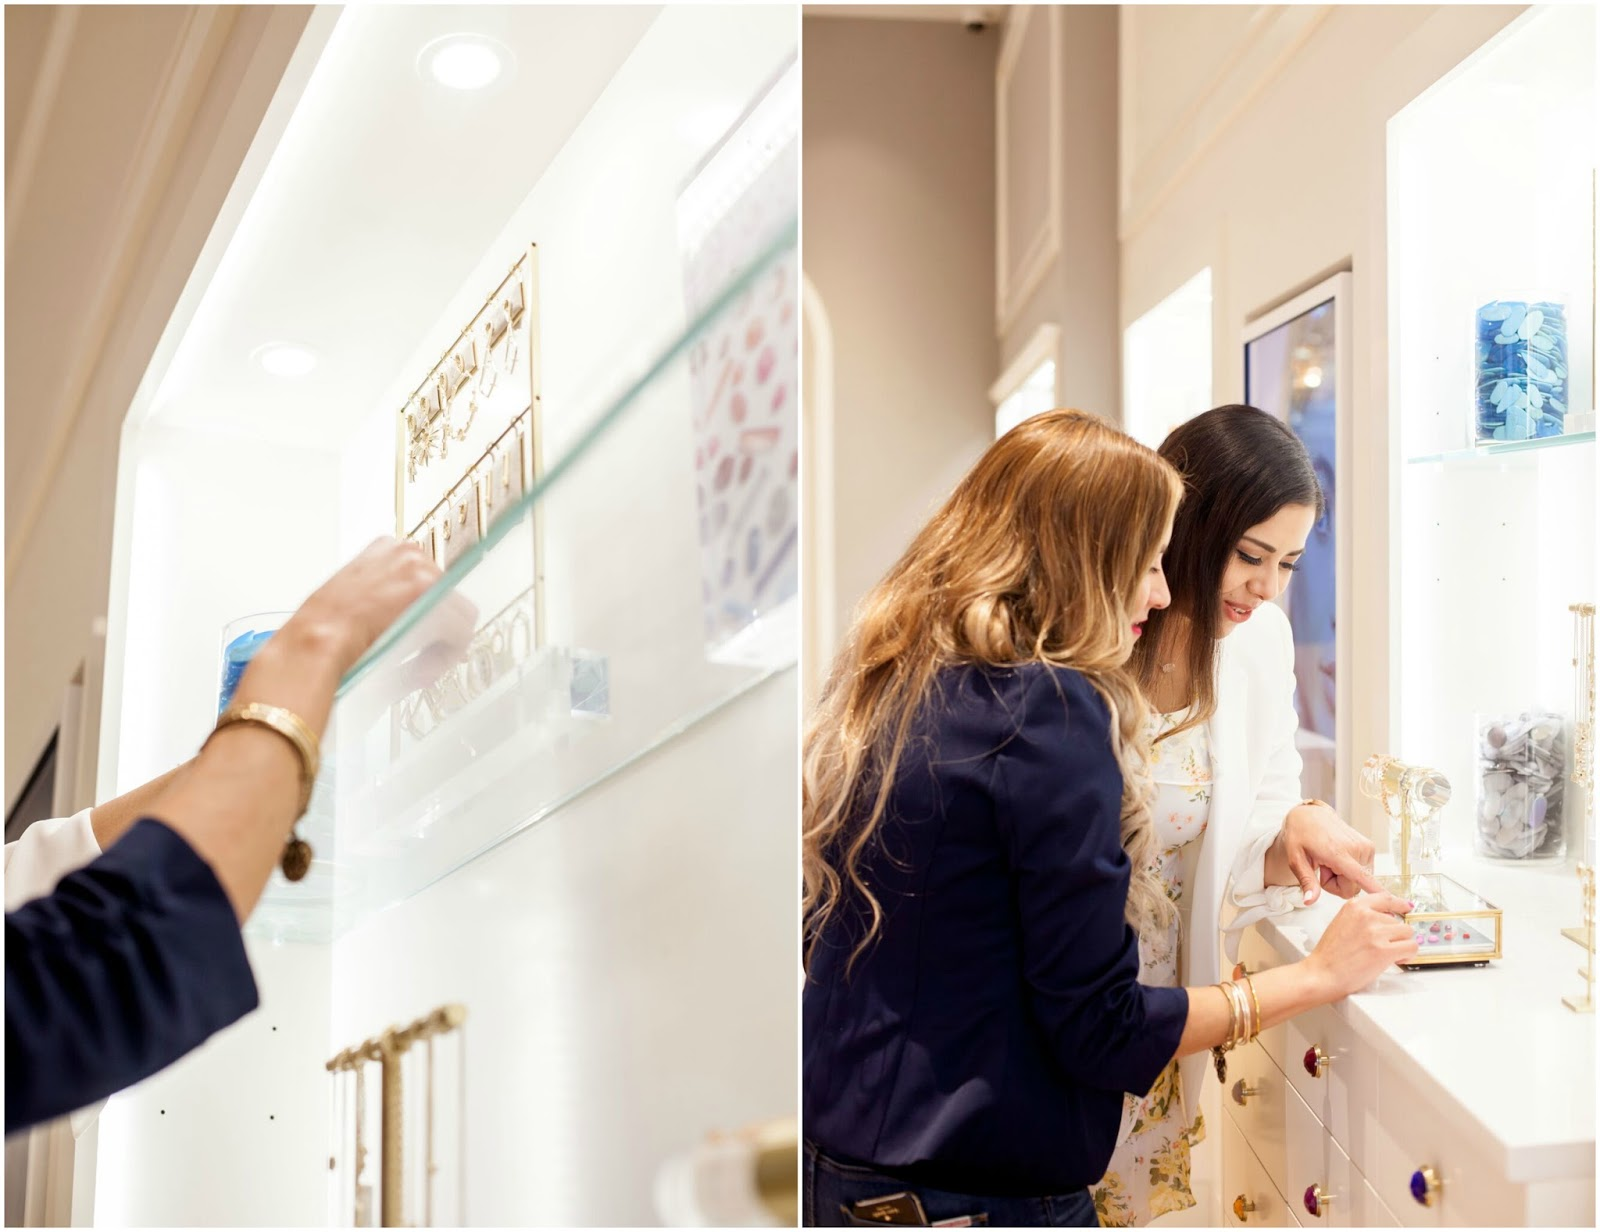 Kendra Scott UTC shopping experience